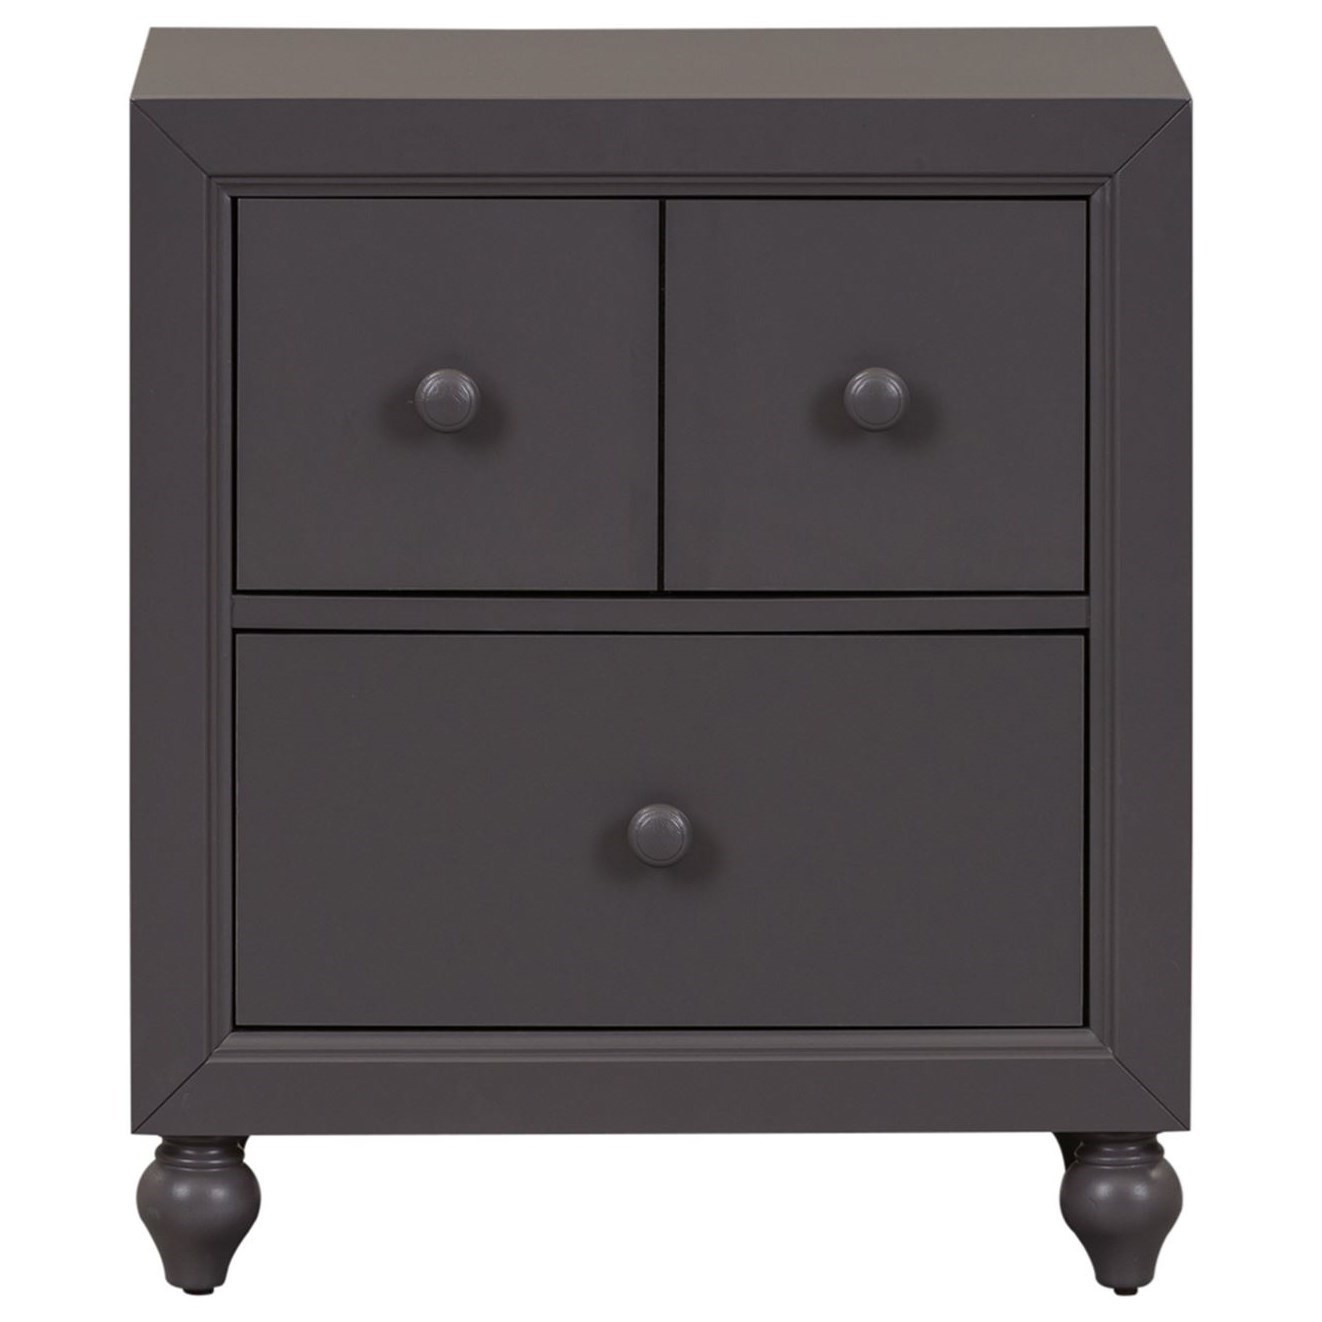 Cottage View Nightstand by Libby at Walker's Furniture